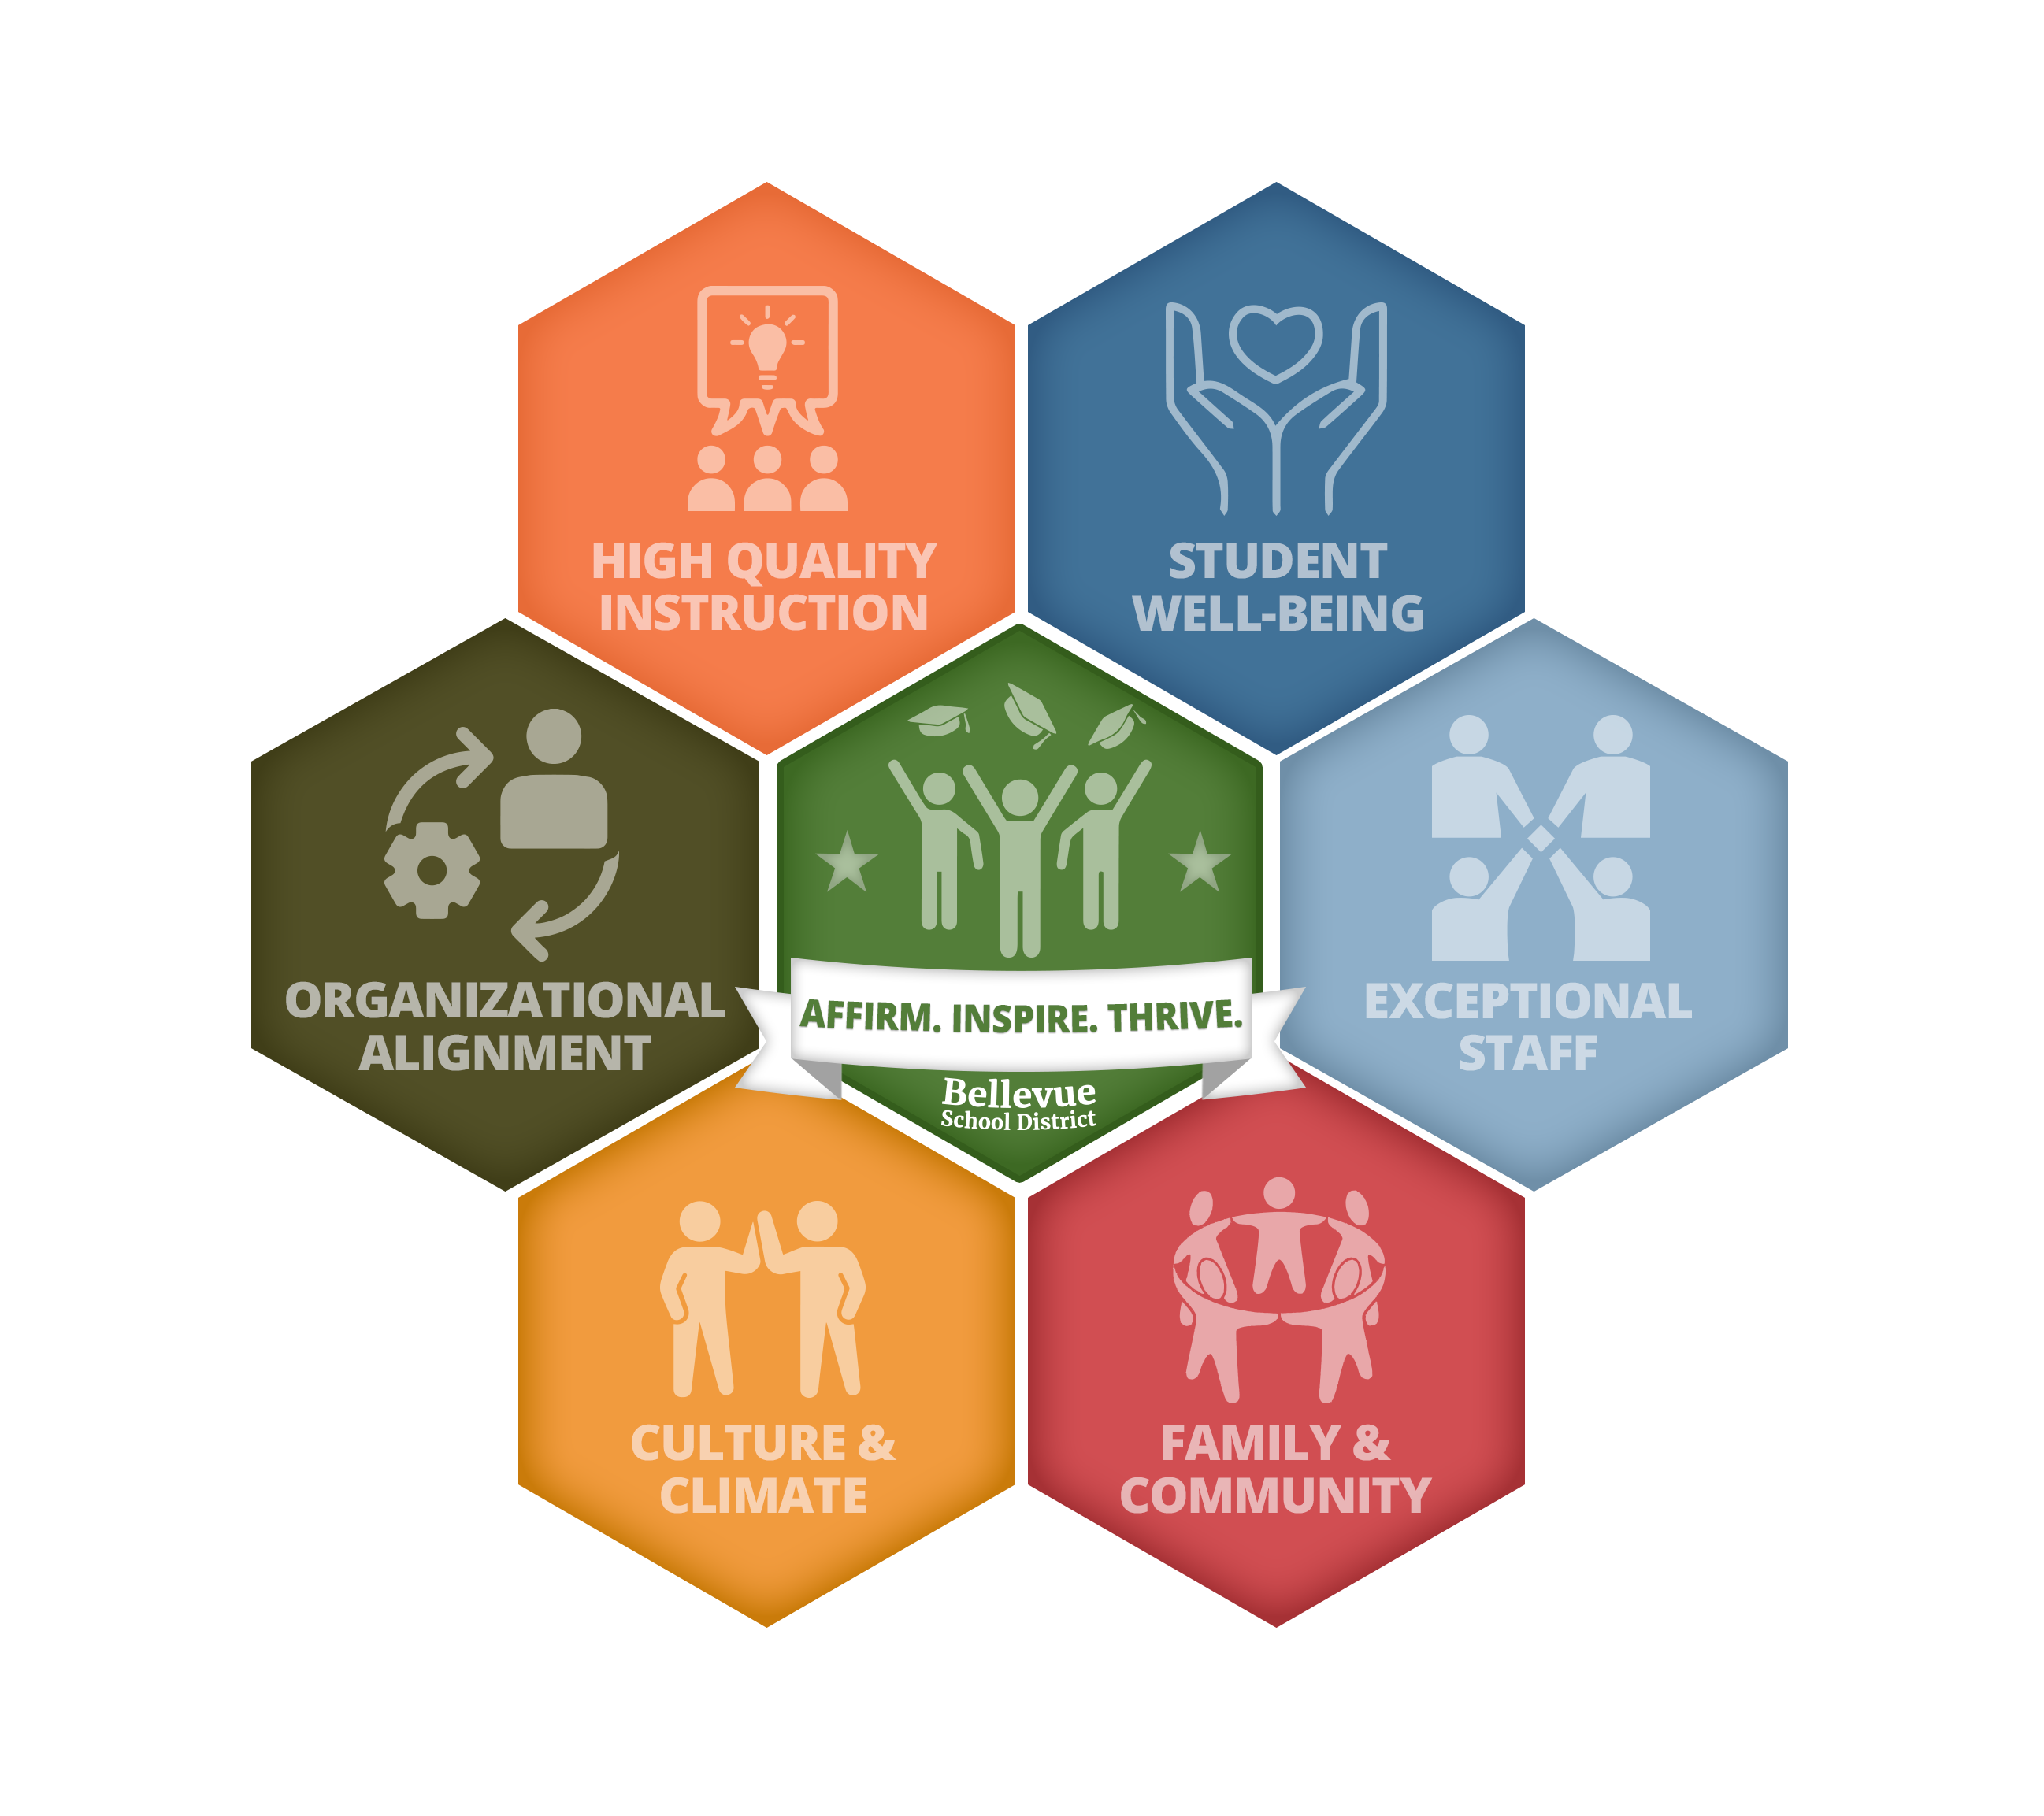 Bellevue School District Priorities: High-Quality Instruction, Student Well-Being, Exceptional Staff, Climate and Culture, Family and Community, Organizational Alignment, Affirm, Inspire, and Thrive.